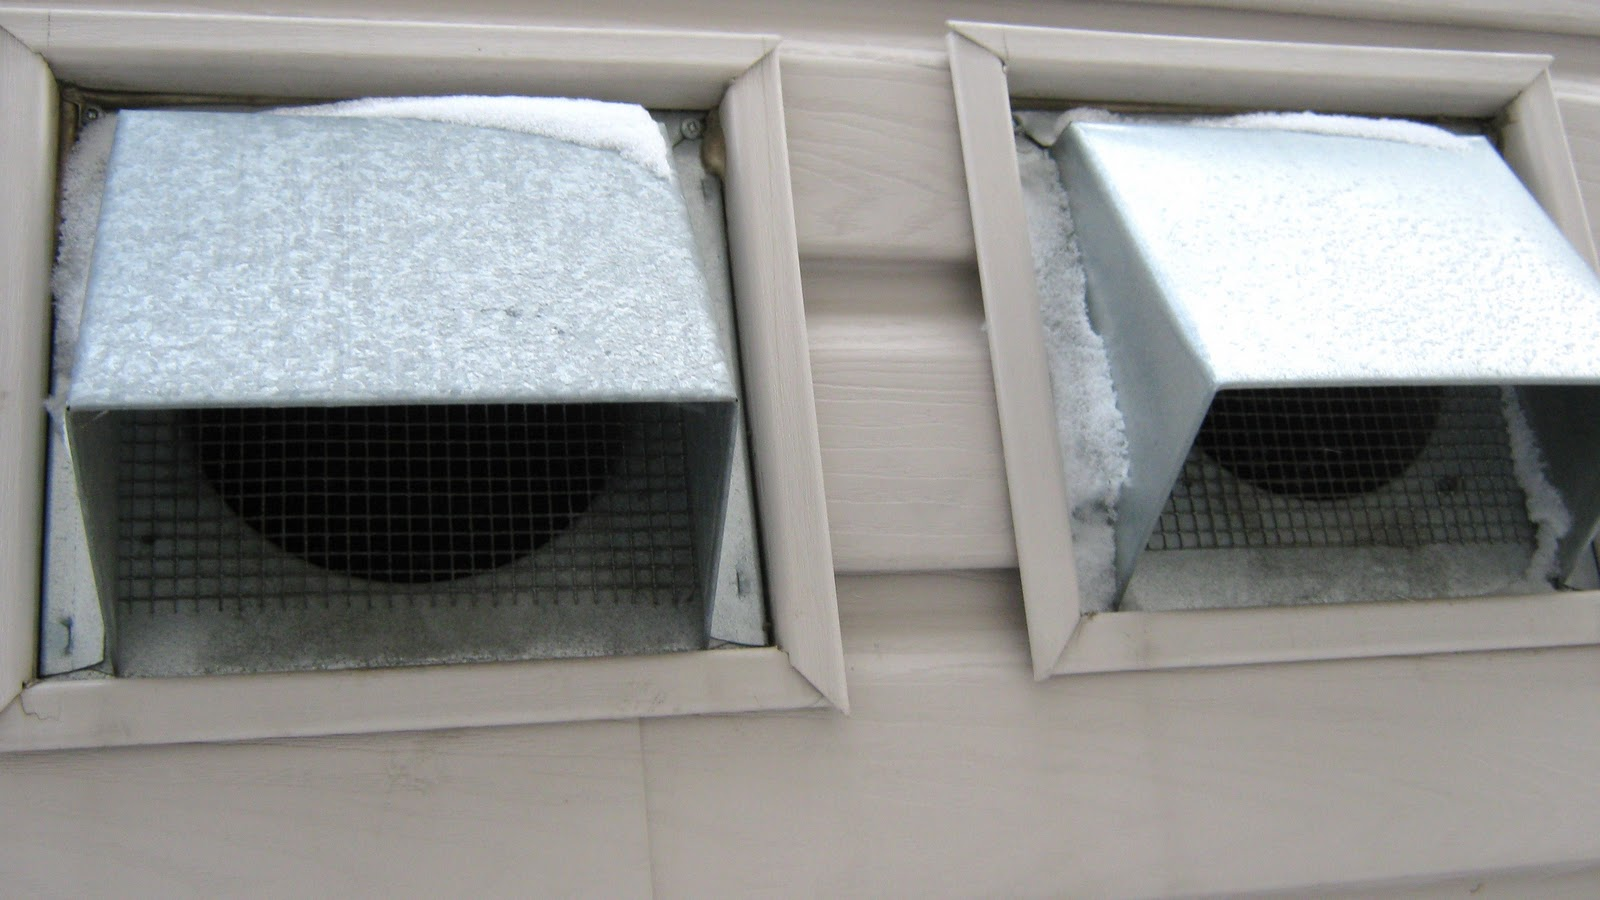 #546777 LIVING THE GARDENING LIFE: Avoiding Carbon Monoxide  Highly Rated 2799 External Air Vent Covers wallpapers with 1600x900 px on helpvideos.info - Air Conditioners, Air Coolers and more